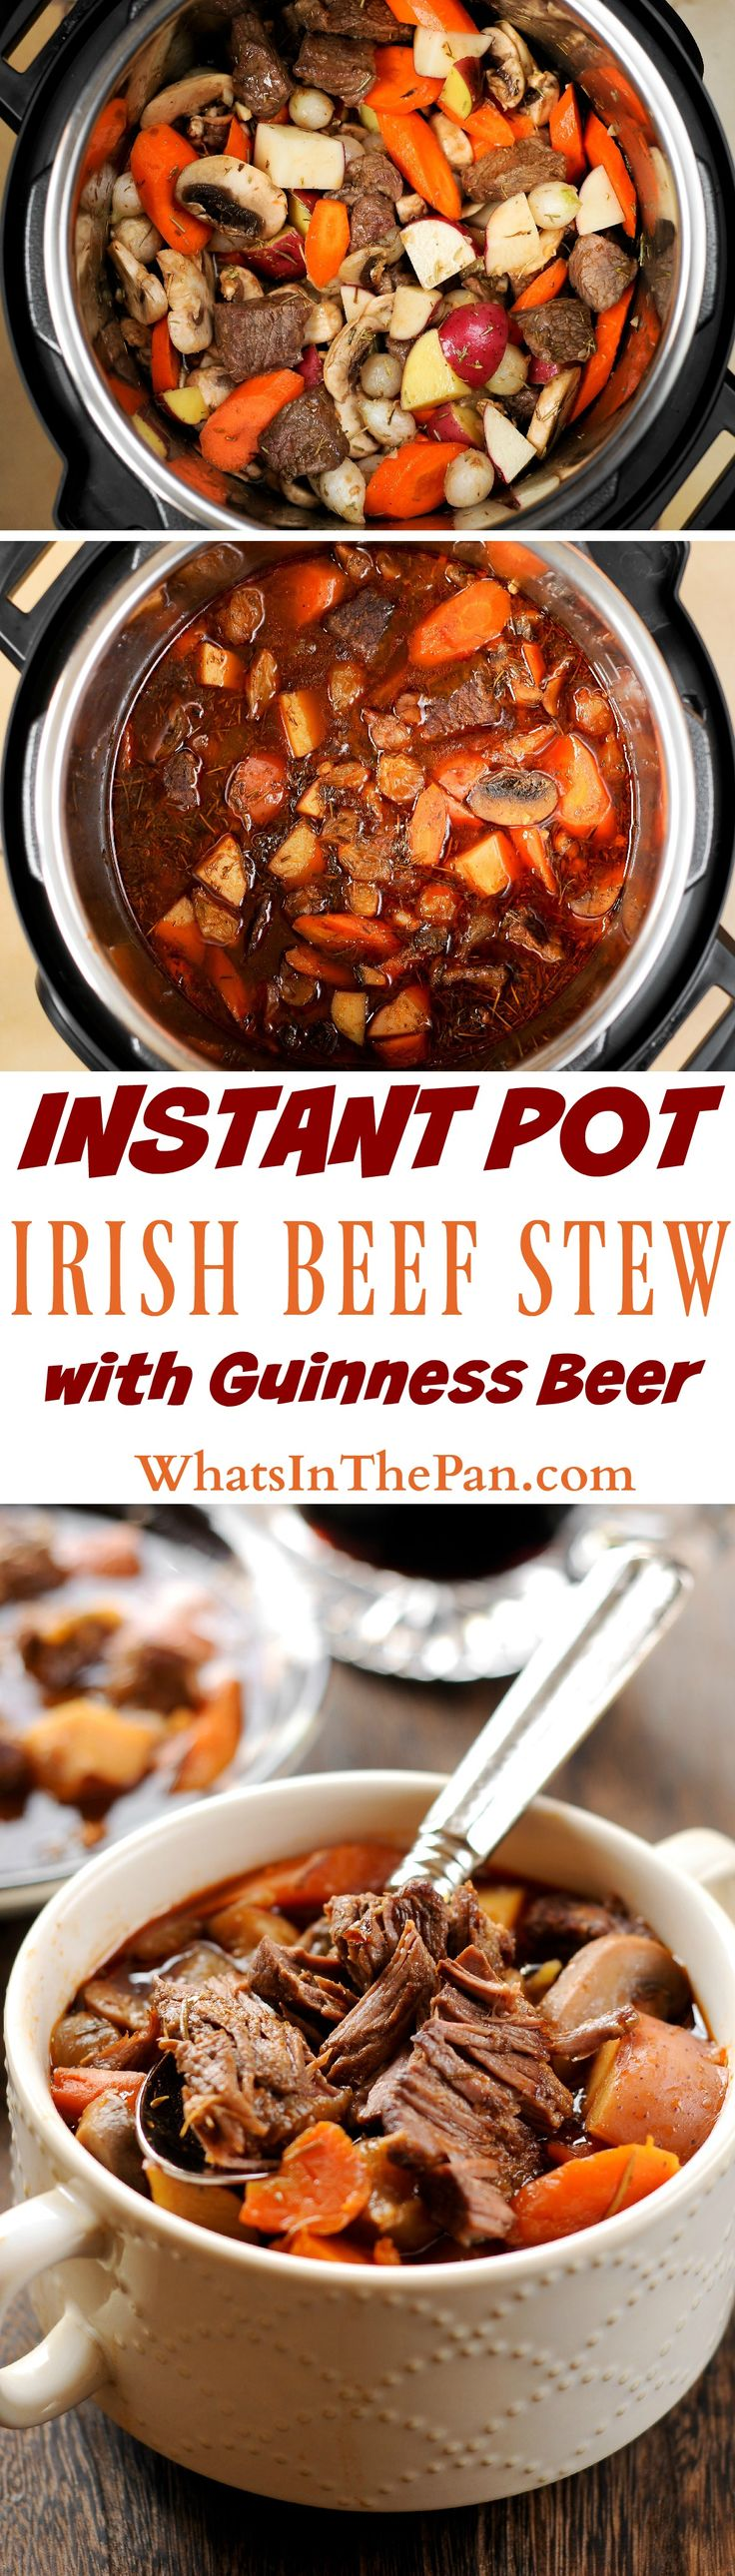 Instant Pot Irish Beef and Guinness Stew is a delicious savory dinner that takes only 35 minutes of cooking in the pressure cooker. Detailed instructions are provided. #instantpot #beef #pressurecooker